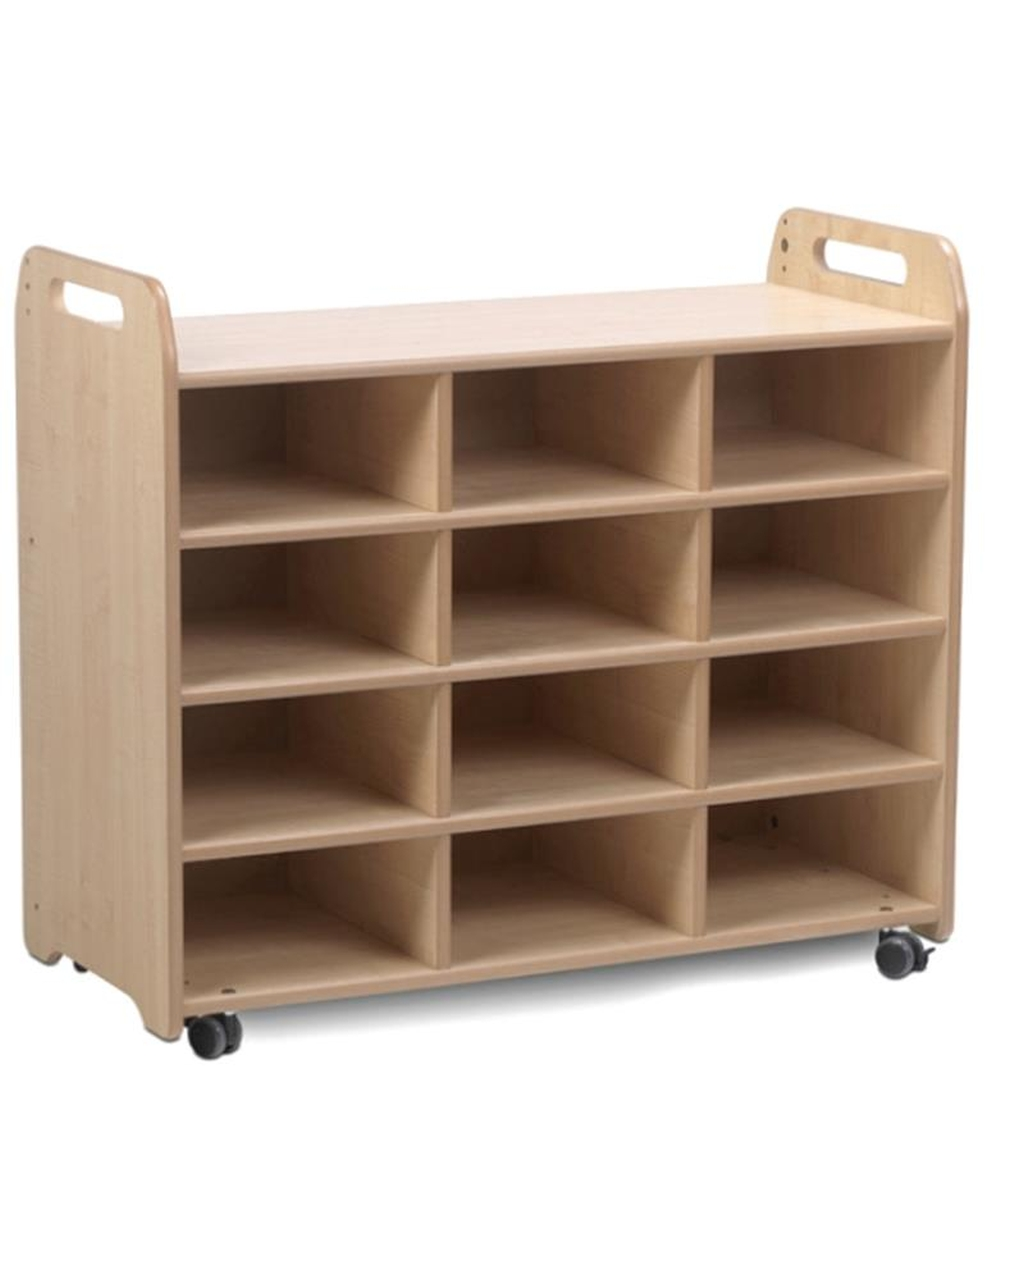 3 Column Storage Unit with trays